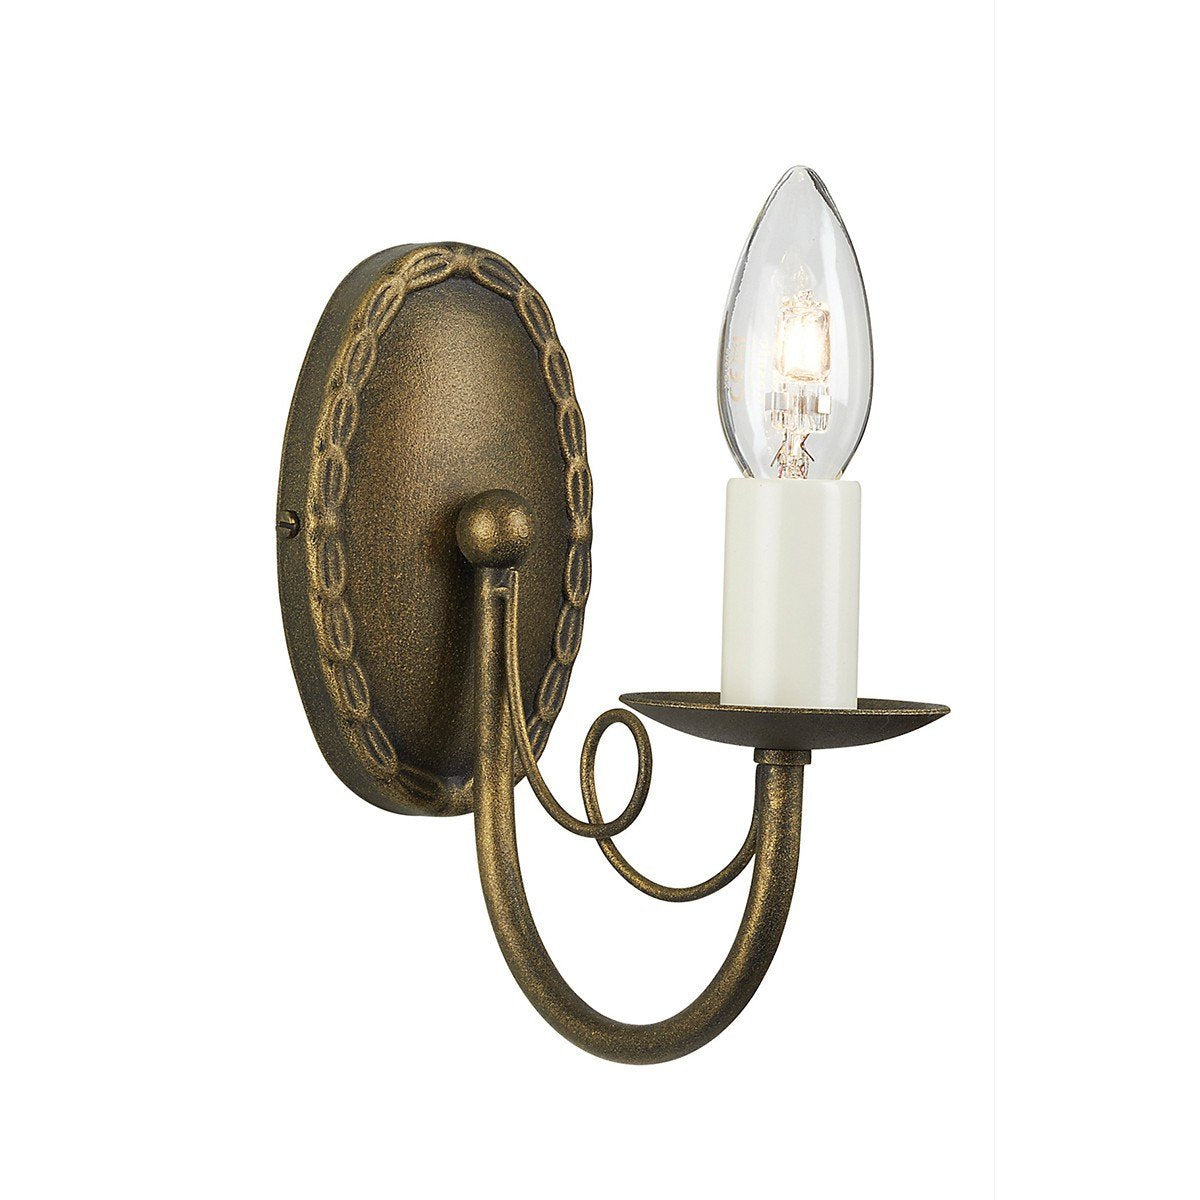 Minster 1 Arm Wall Light - London Lighting - 1